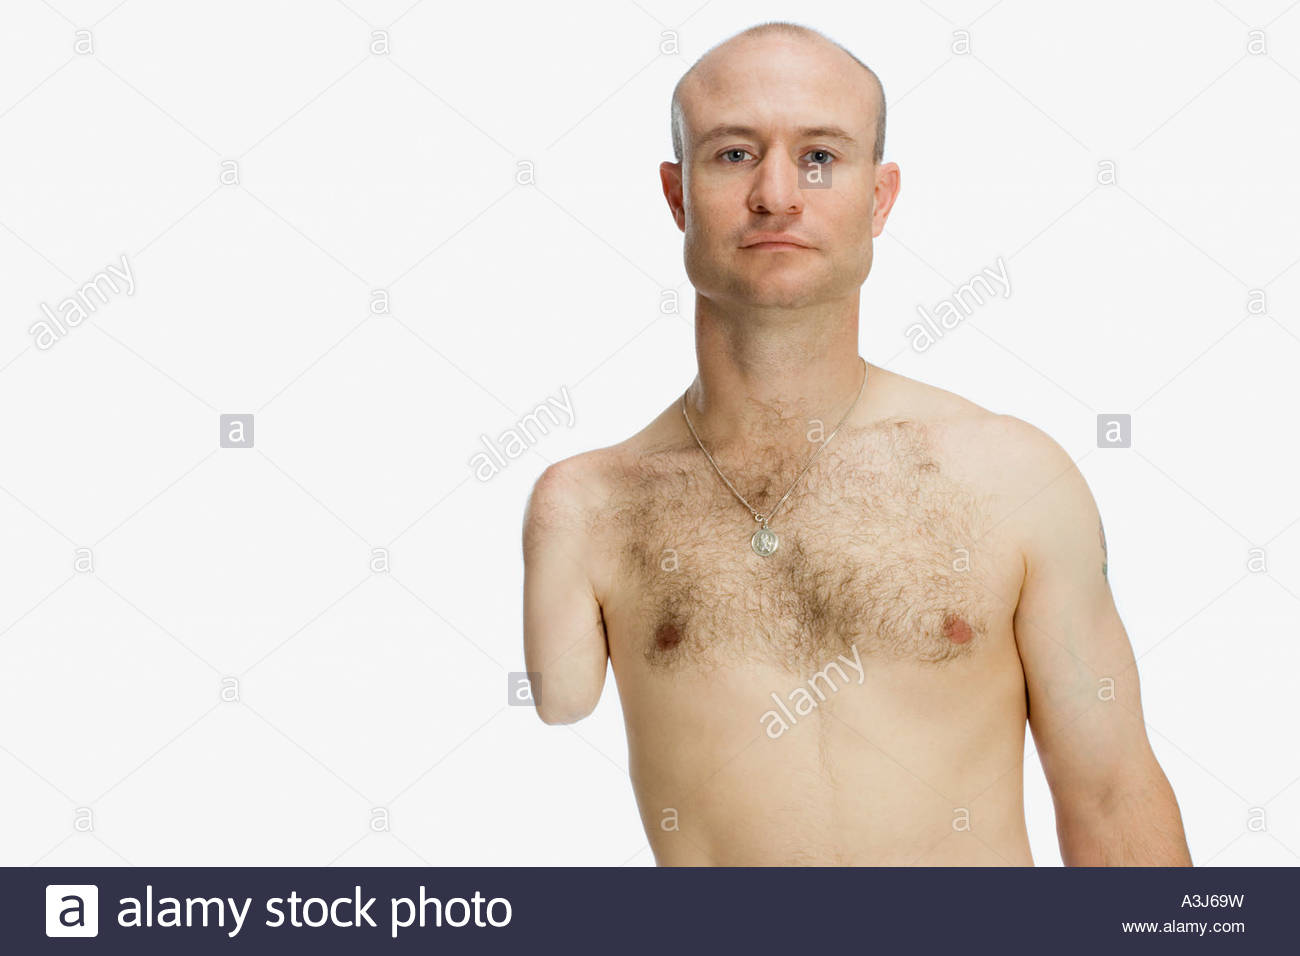 Male Amputee Stock Photos & Male Amputee Stock Images